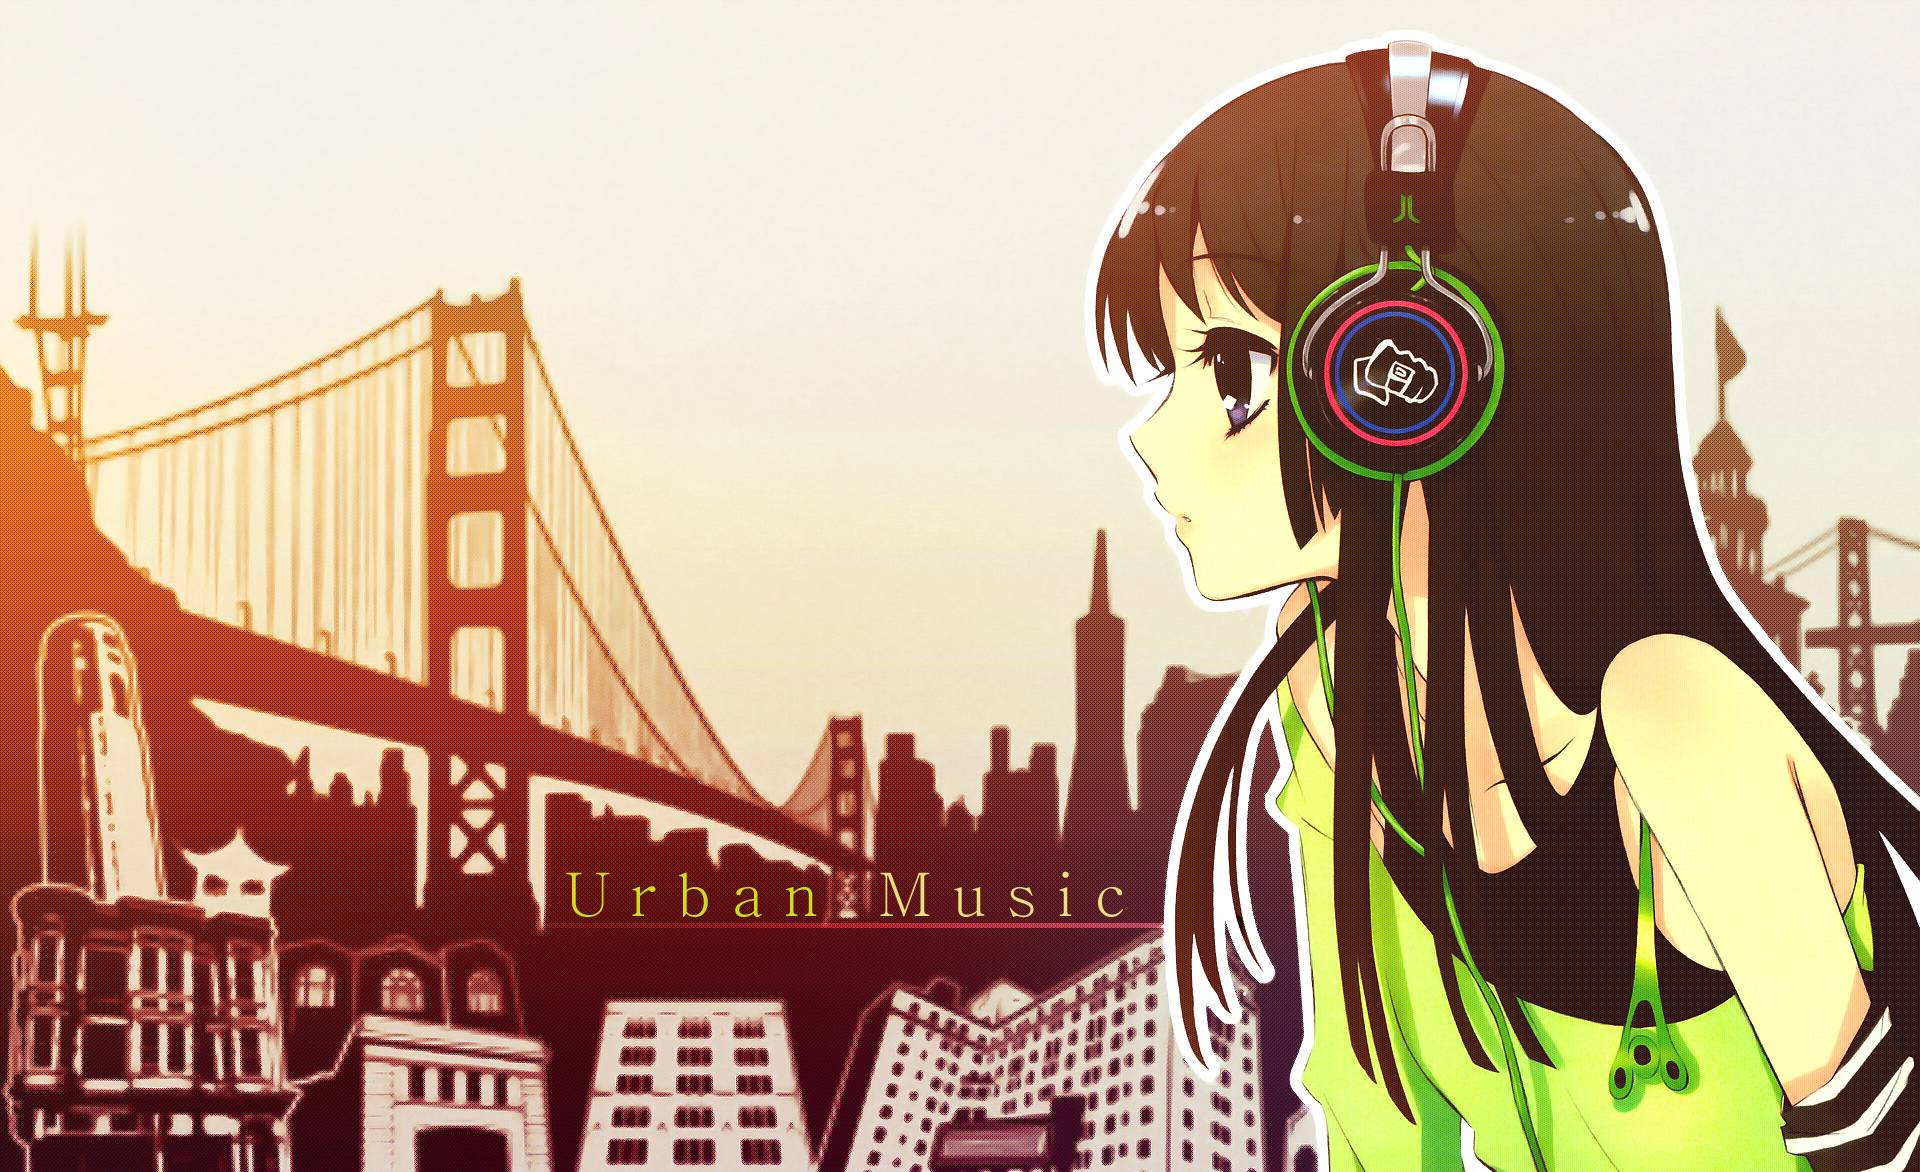 Anime Music Wallpaper Hd 1920×1080